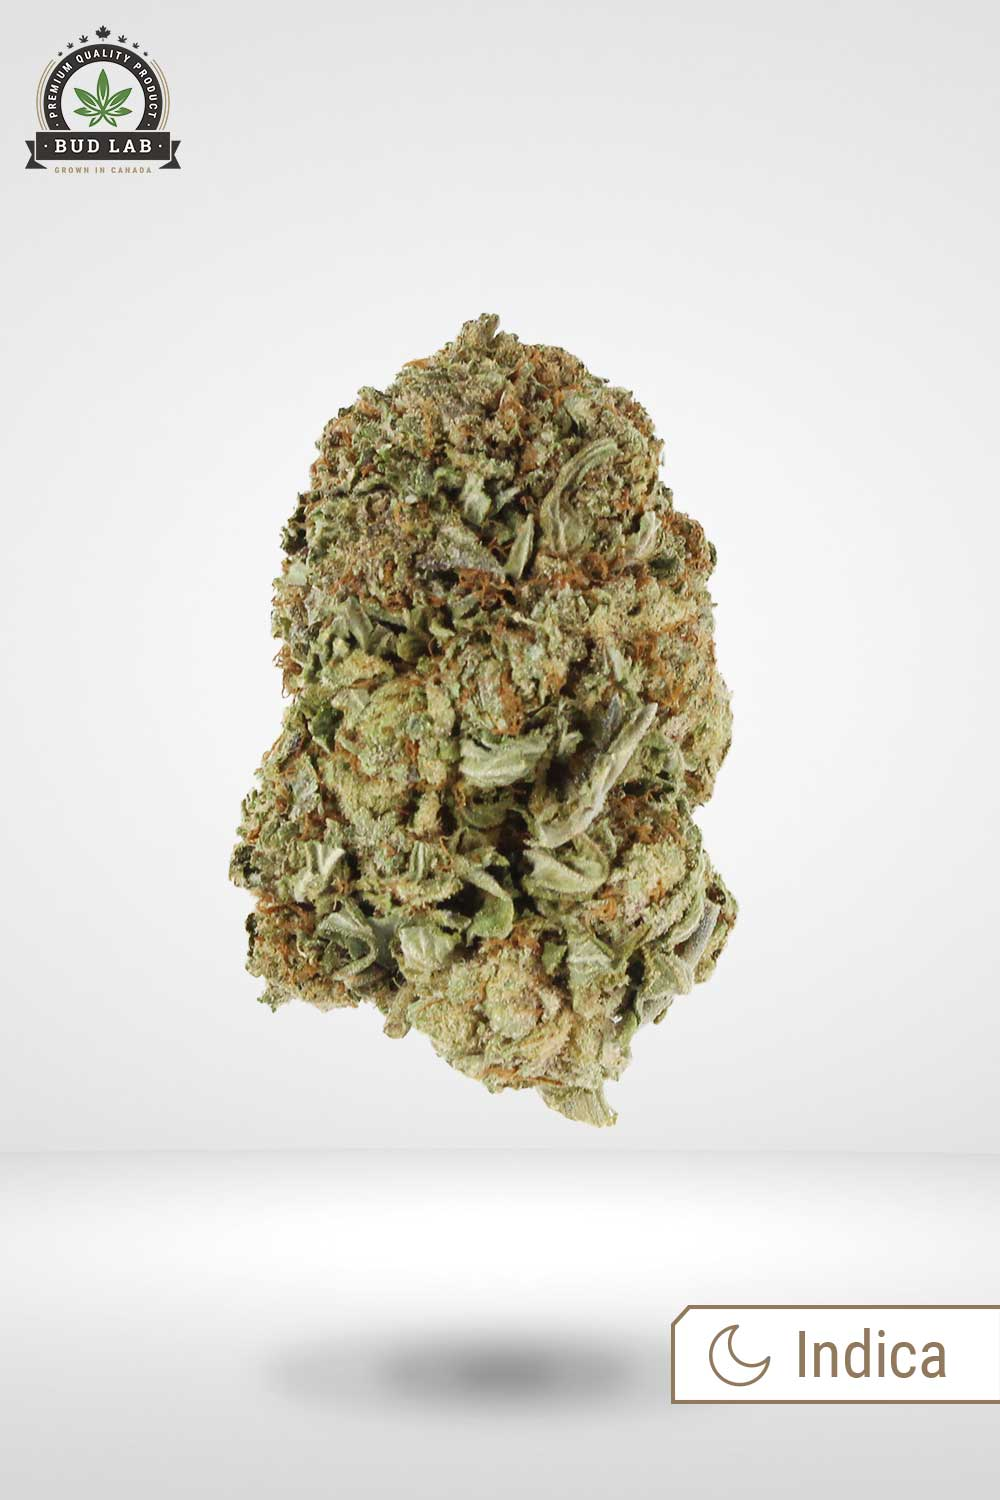 Black Kush AA Weed Indica Strain Bud Lab Front View